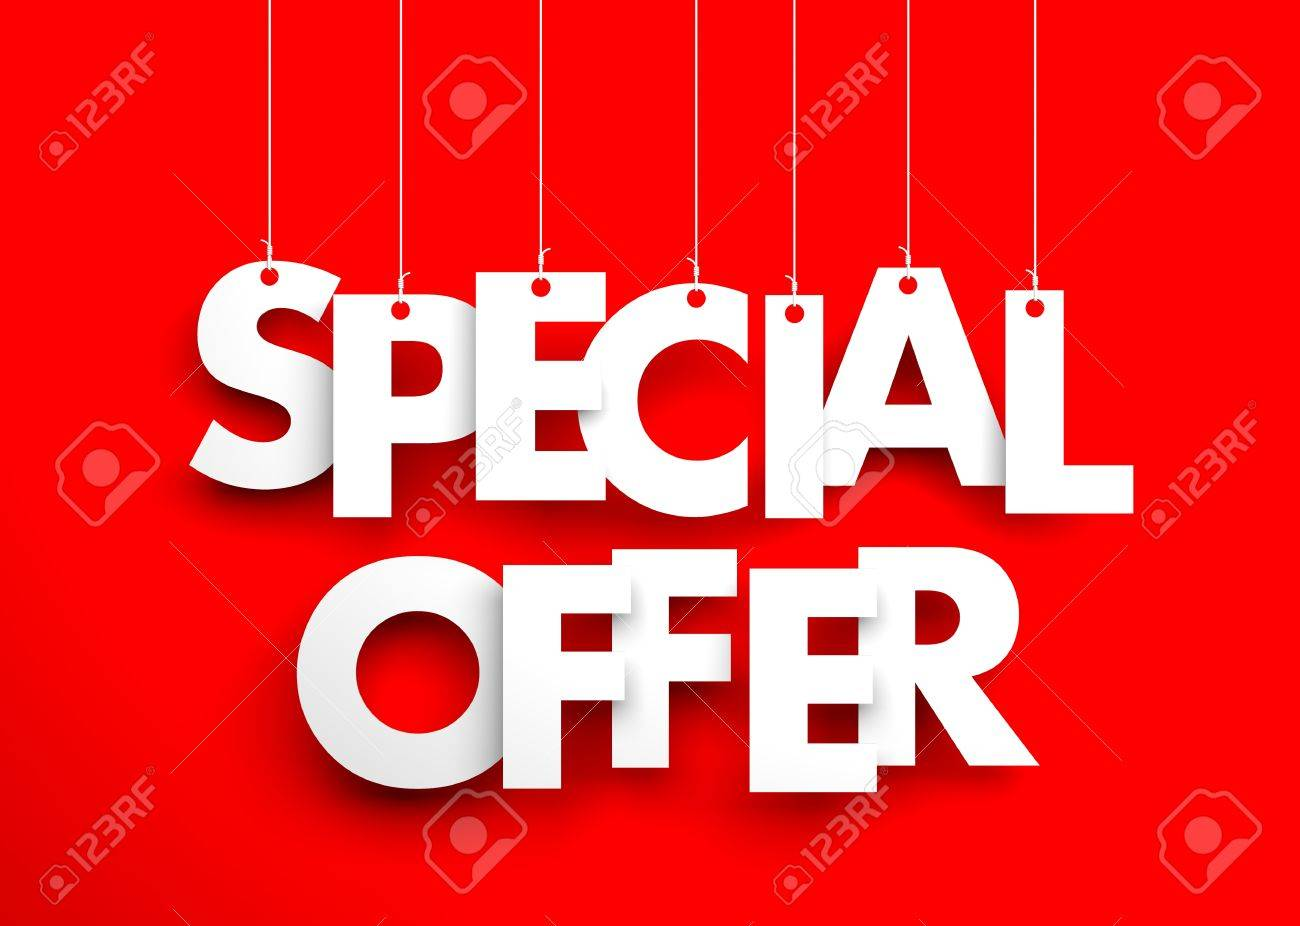 Special Offer Text Hanging On The Strings 3d Illustration Stock Photo Picture And Royalty Free Image Image 65005794